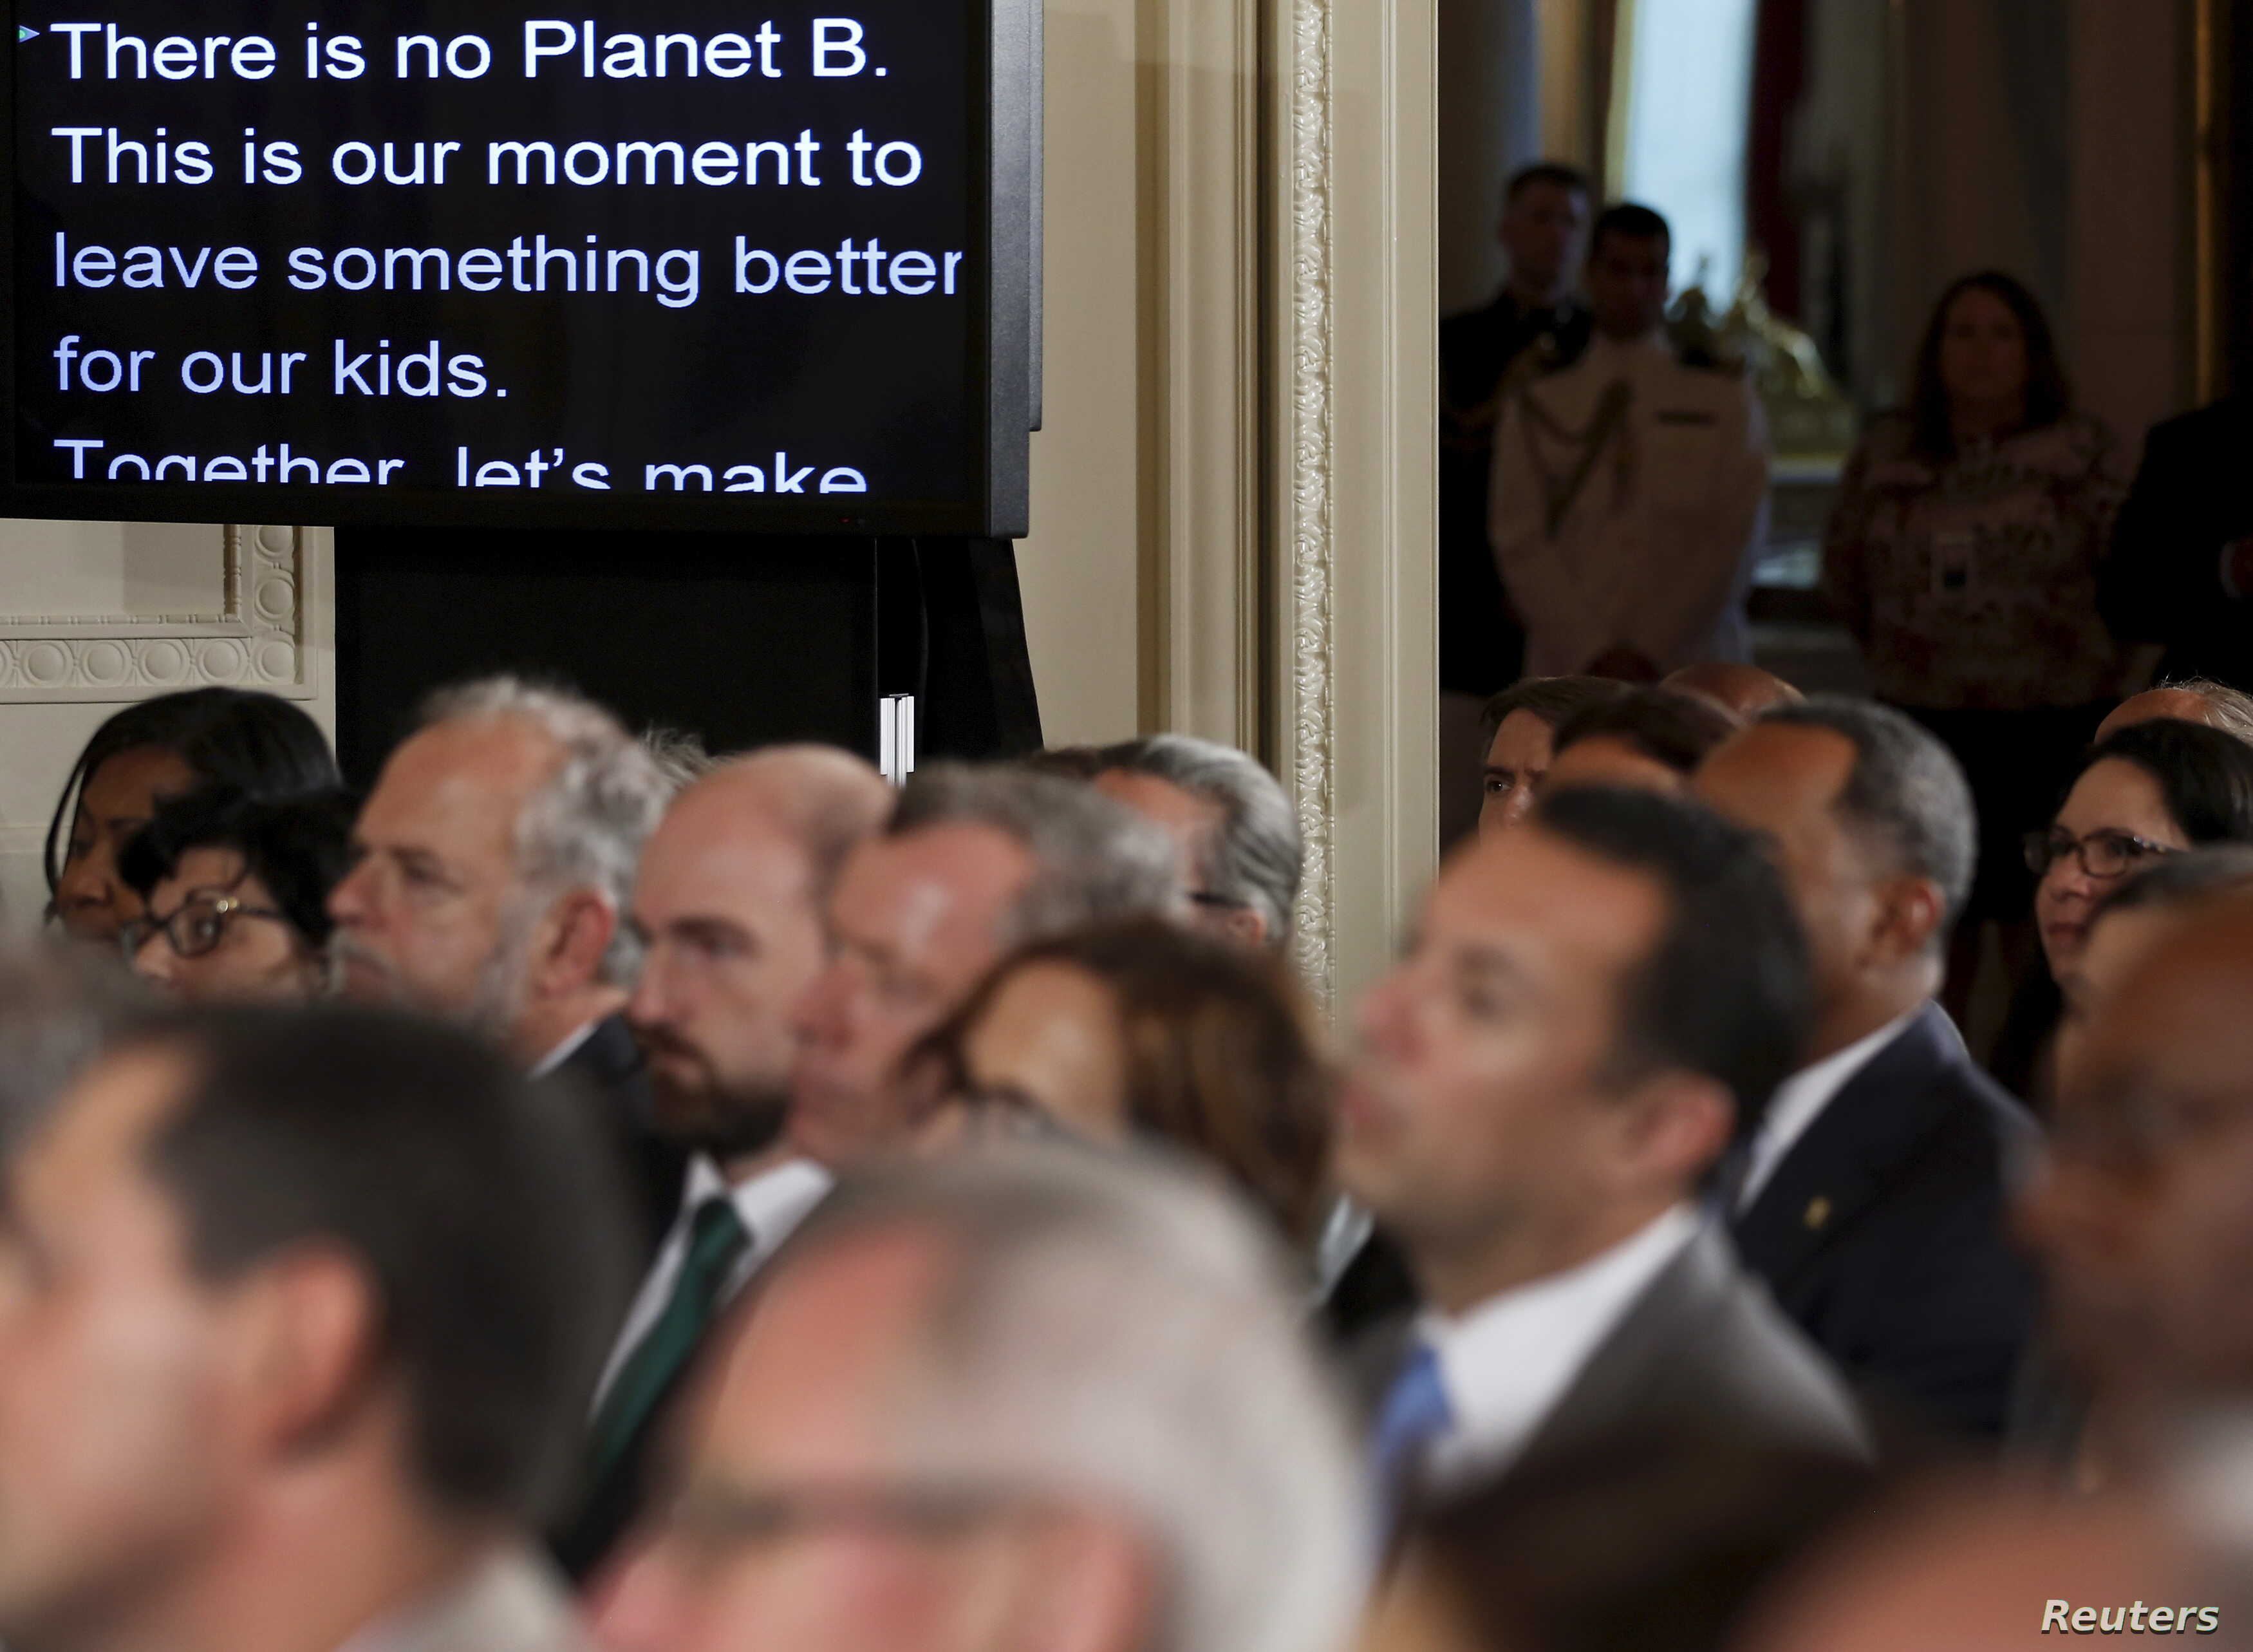 FILE - US President Barack Obama's remarks are shown on large monitors in the East Room as he addresses climate change and the Clean Power Plan at the White House in Washington, Aug. 3, 2015.